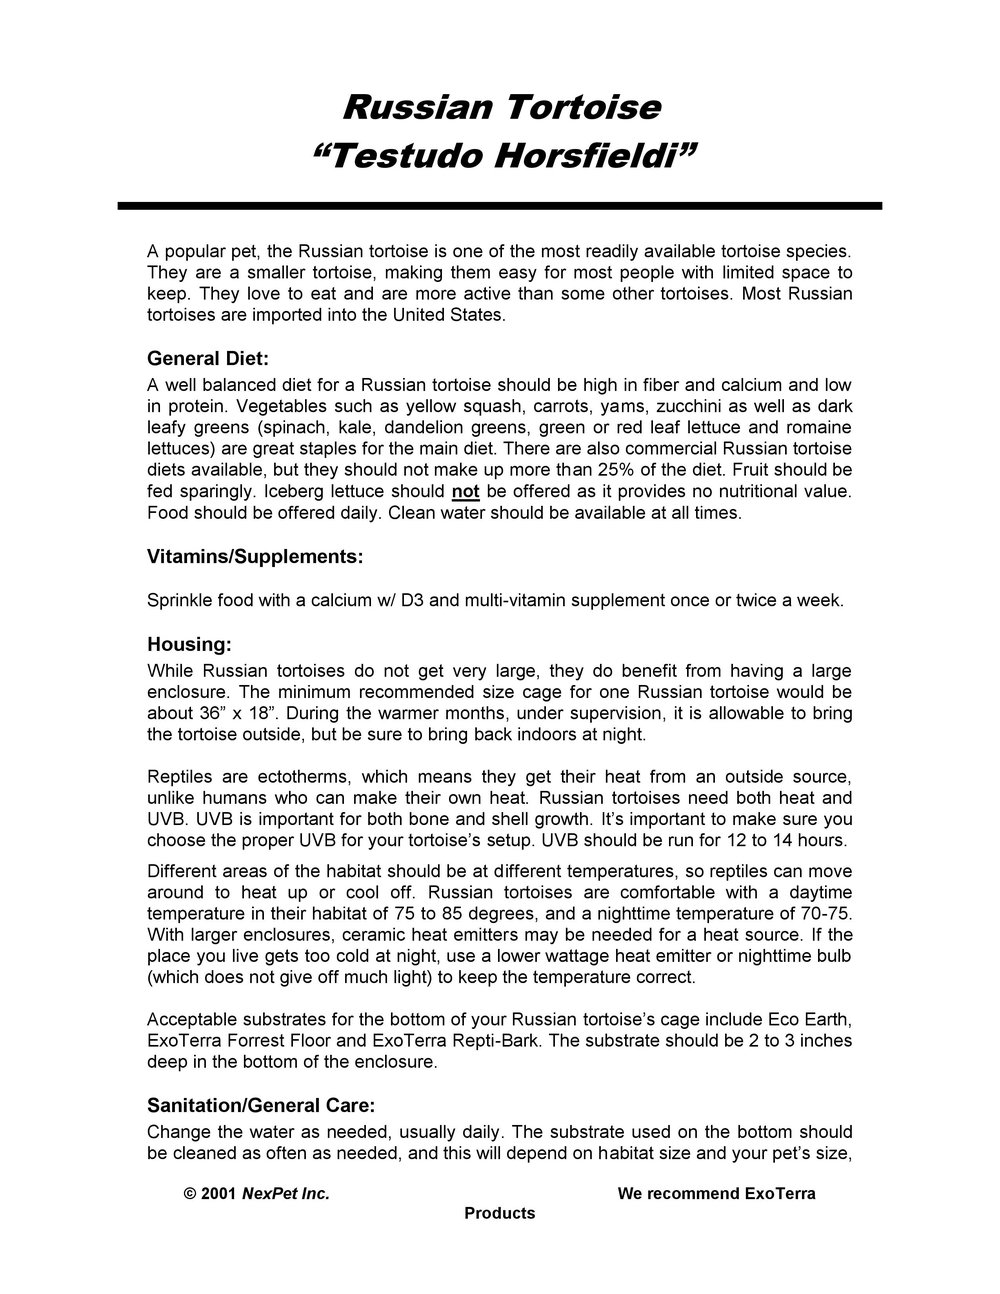 Russian Tortoise Care Sheet pg1